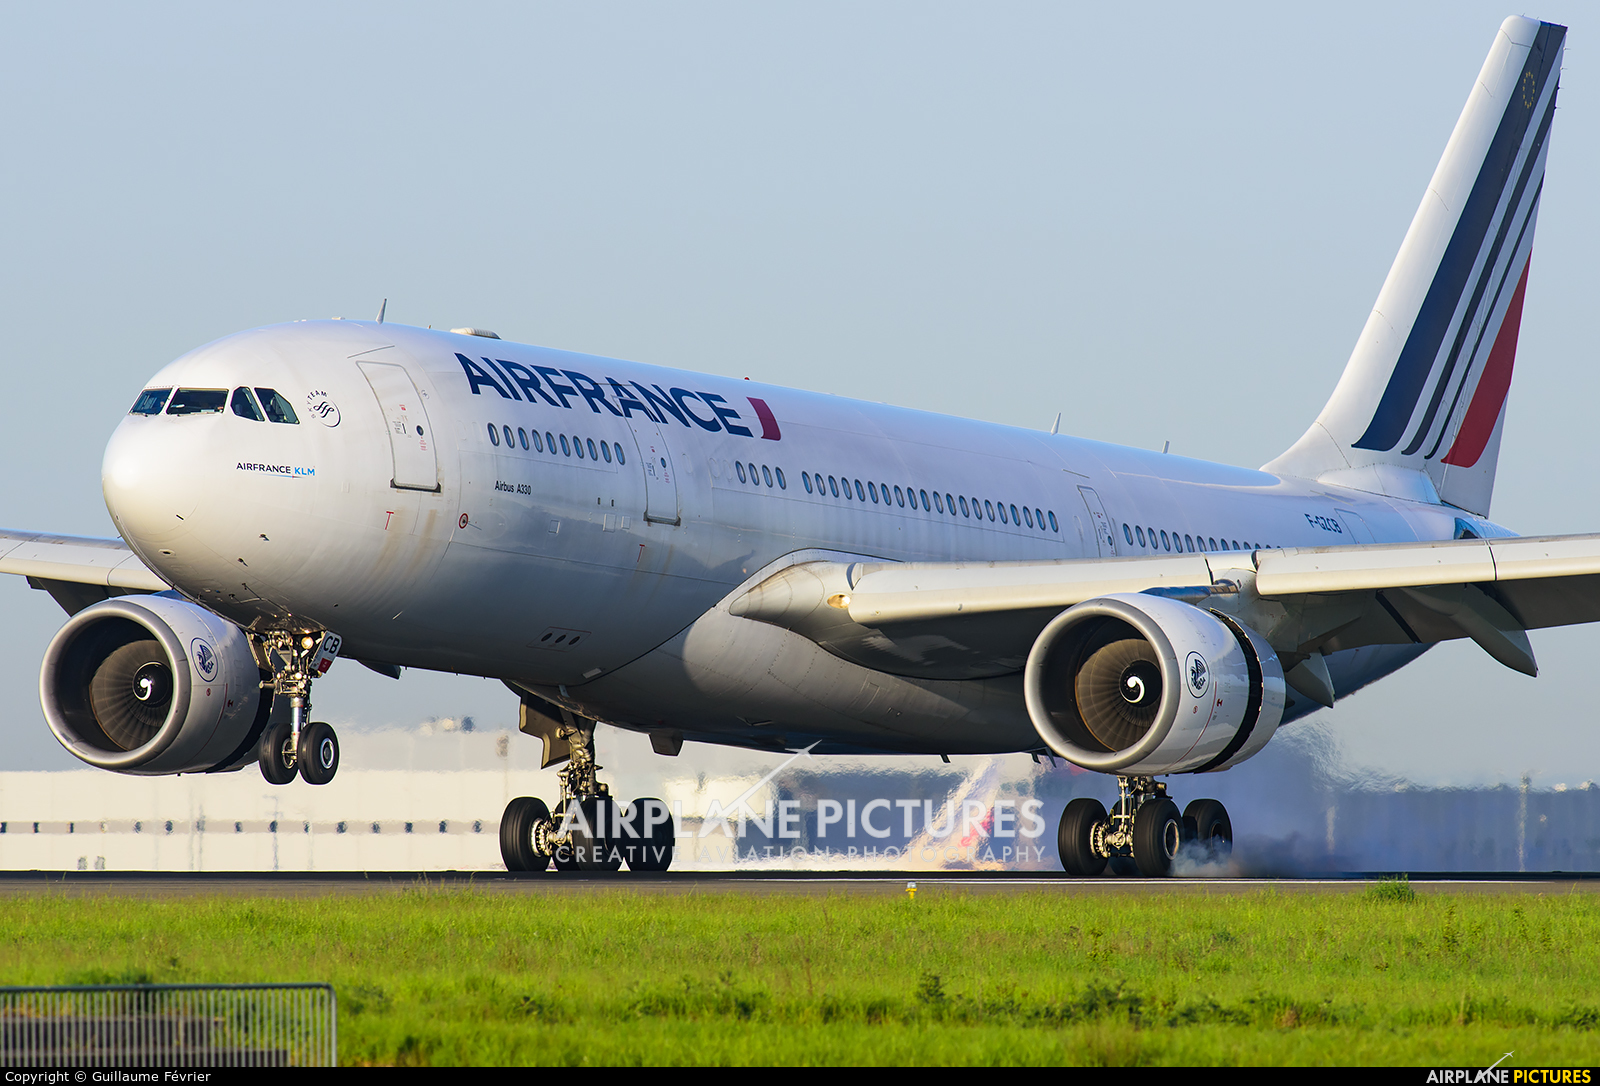 Air France F-GZCB aircraft at Paris - Charles de Gaulle